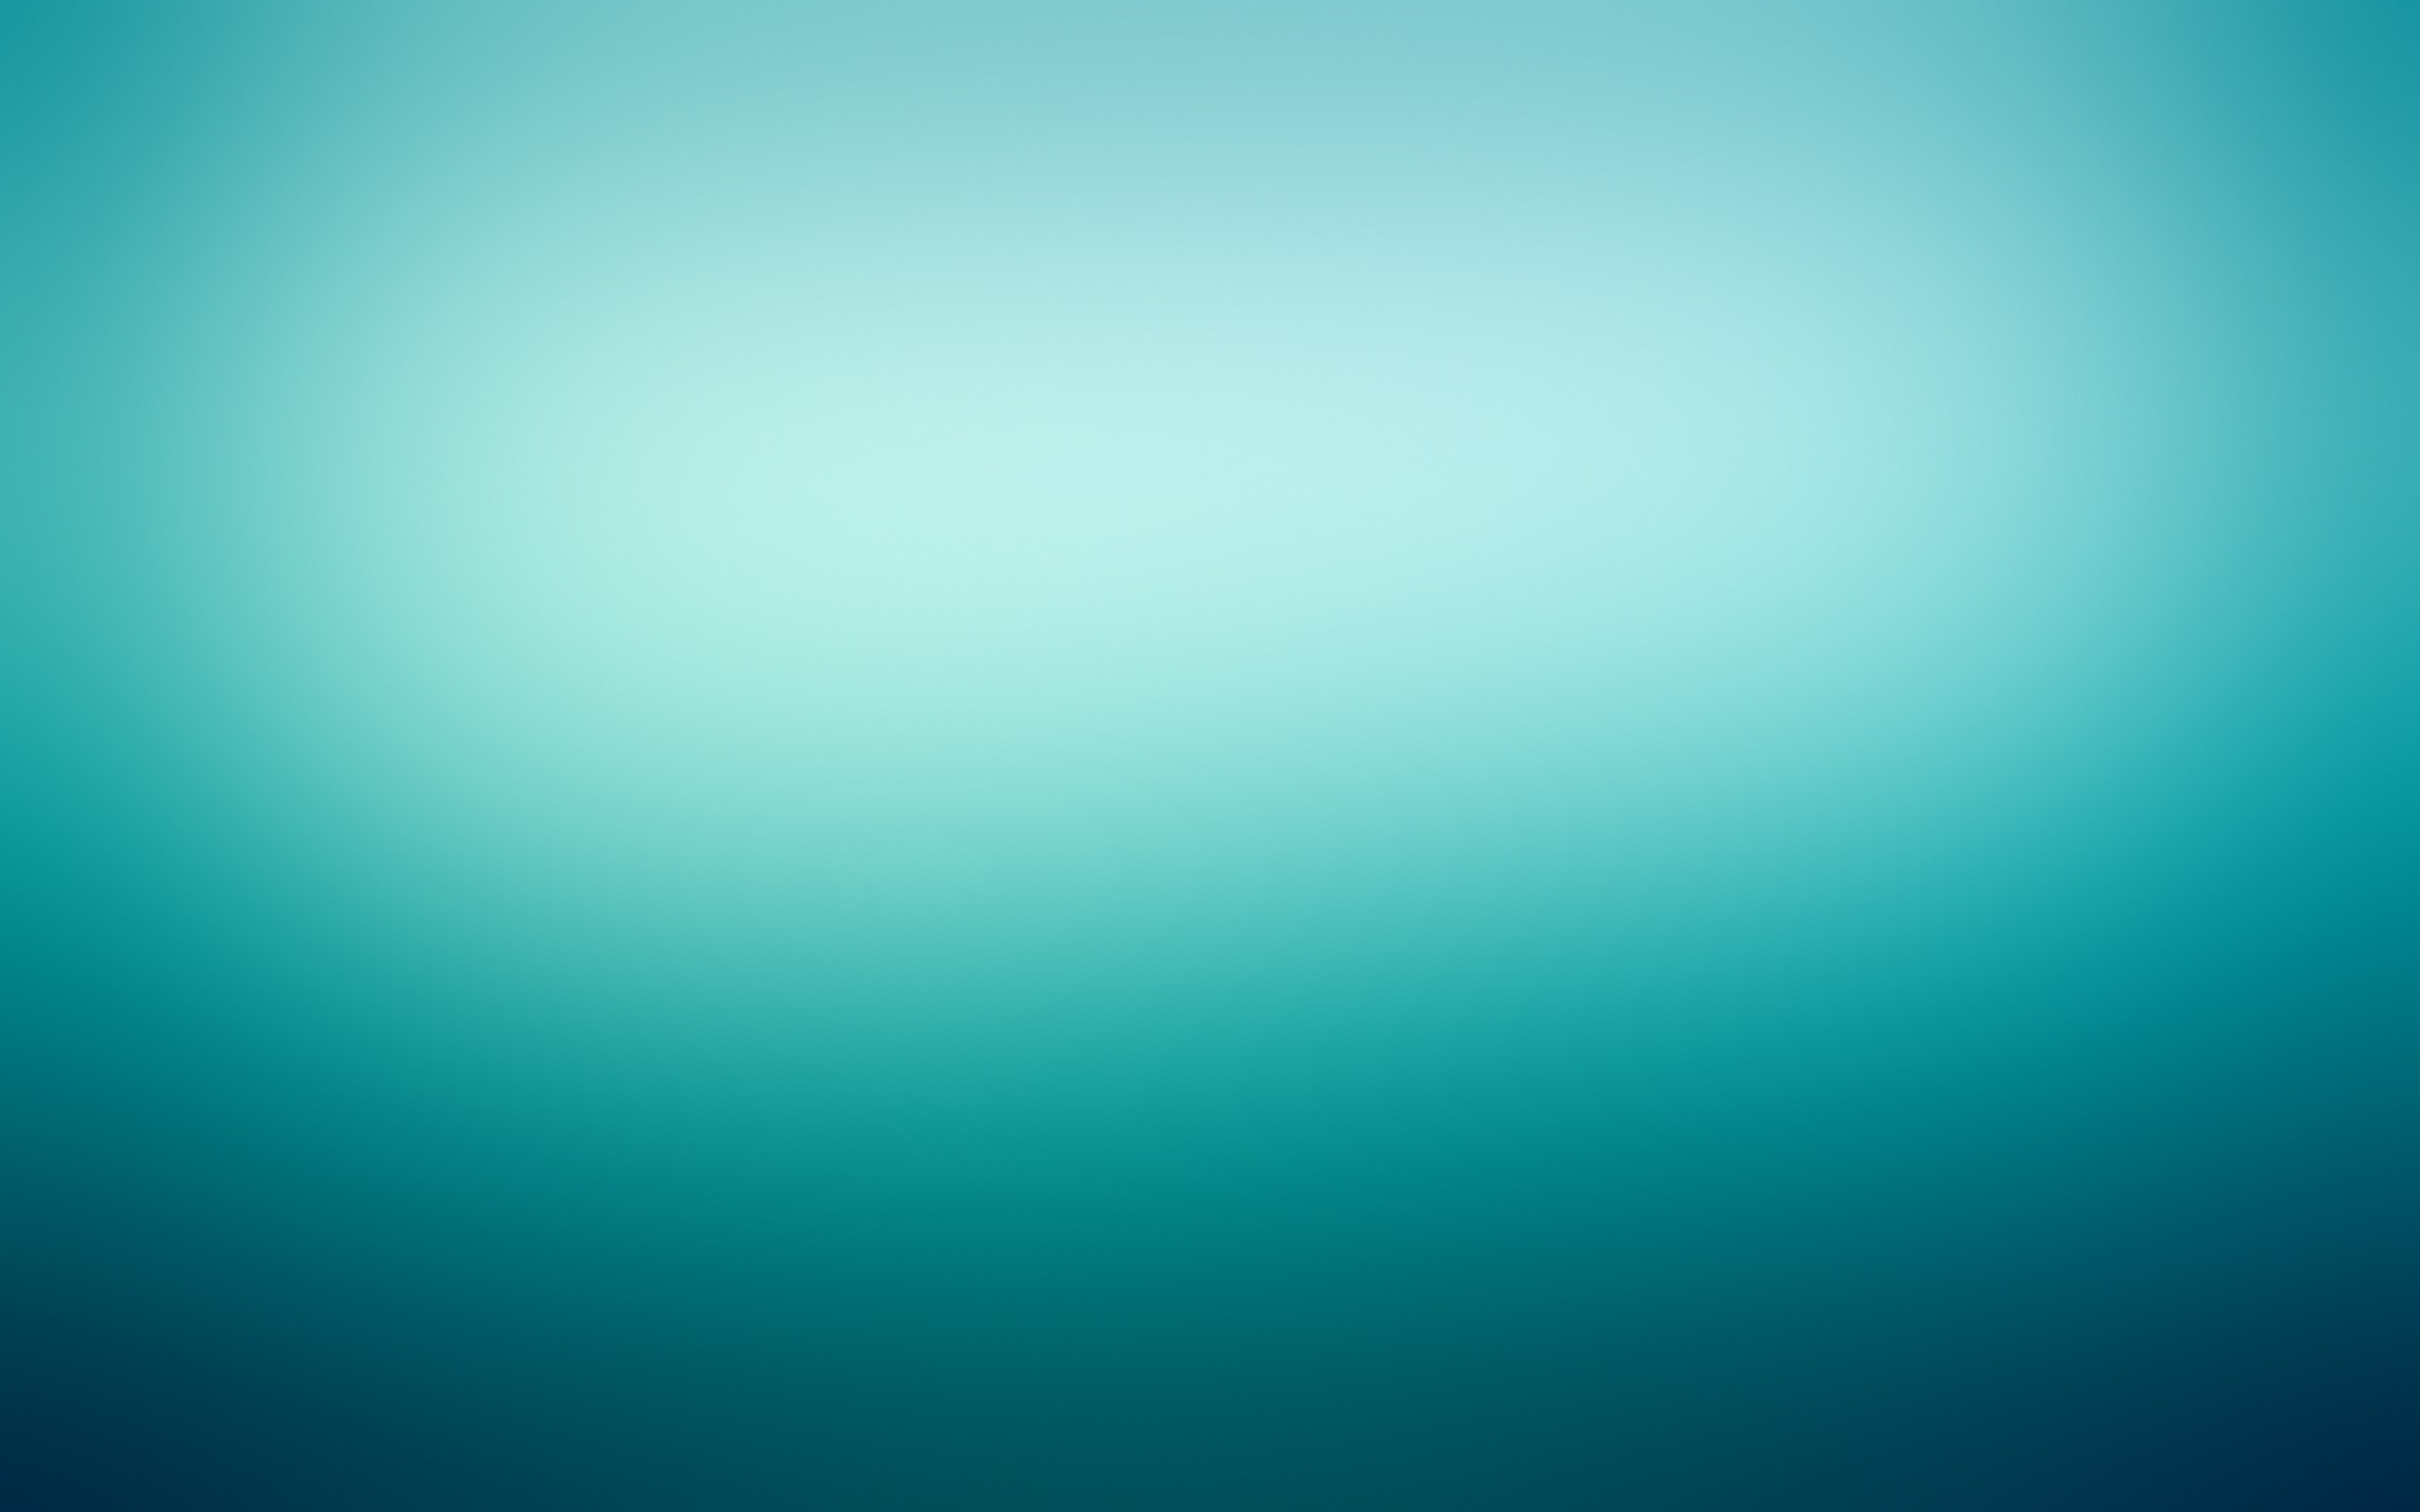 ombre background download free amazing hd wallpapers for desktop